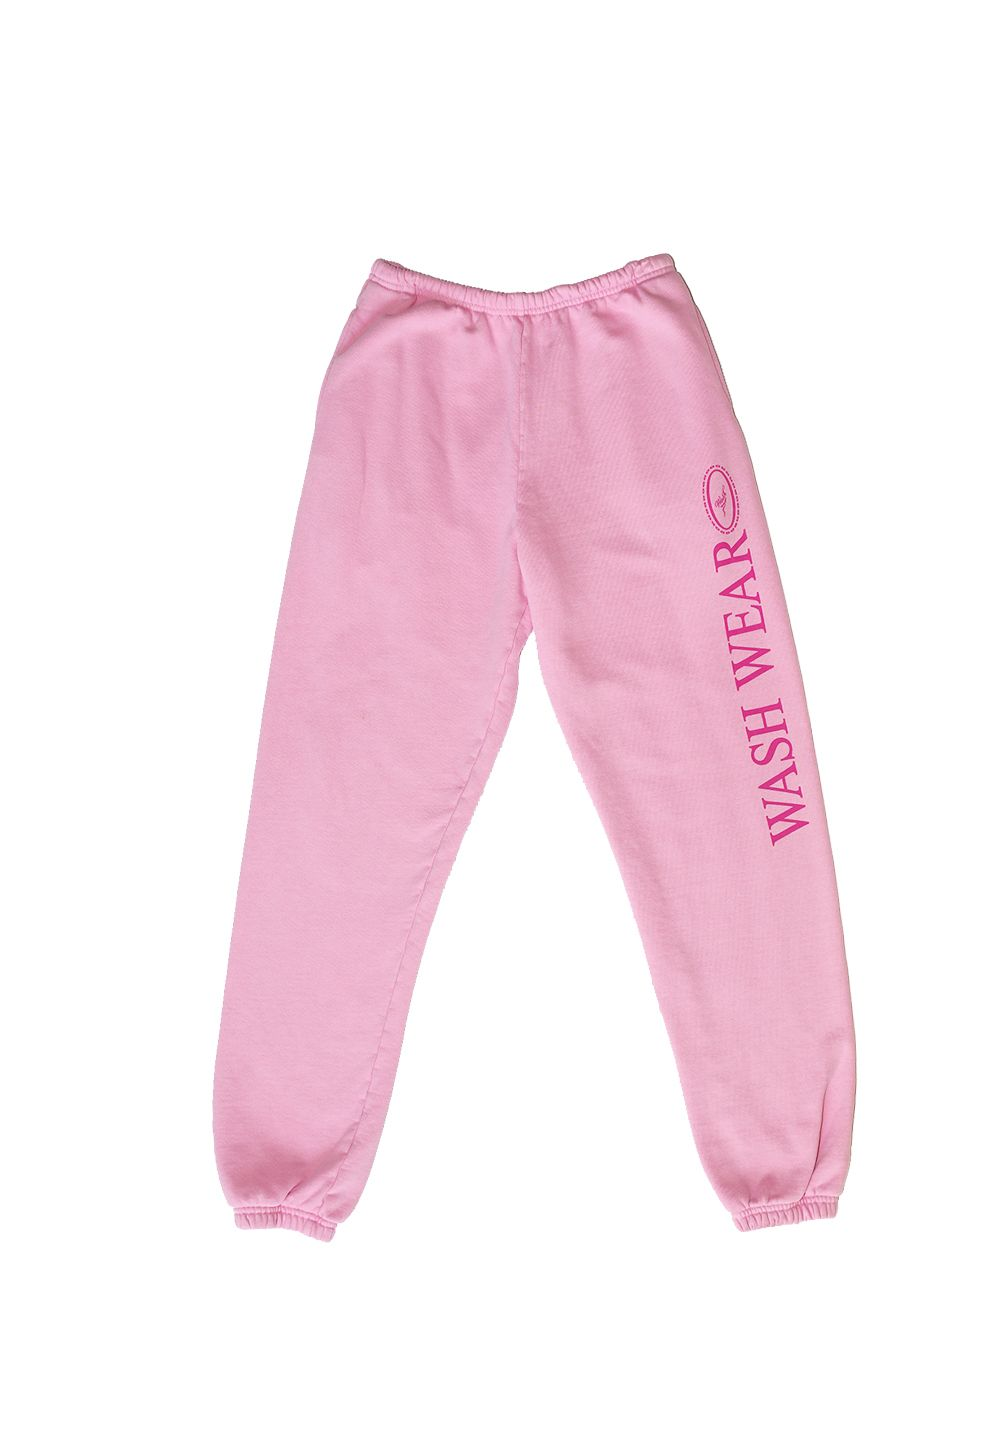 Washwear Sweats_0001_US1A8315